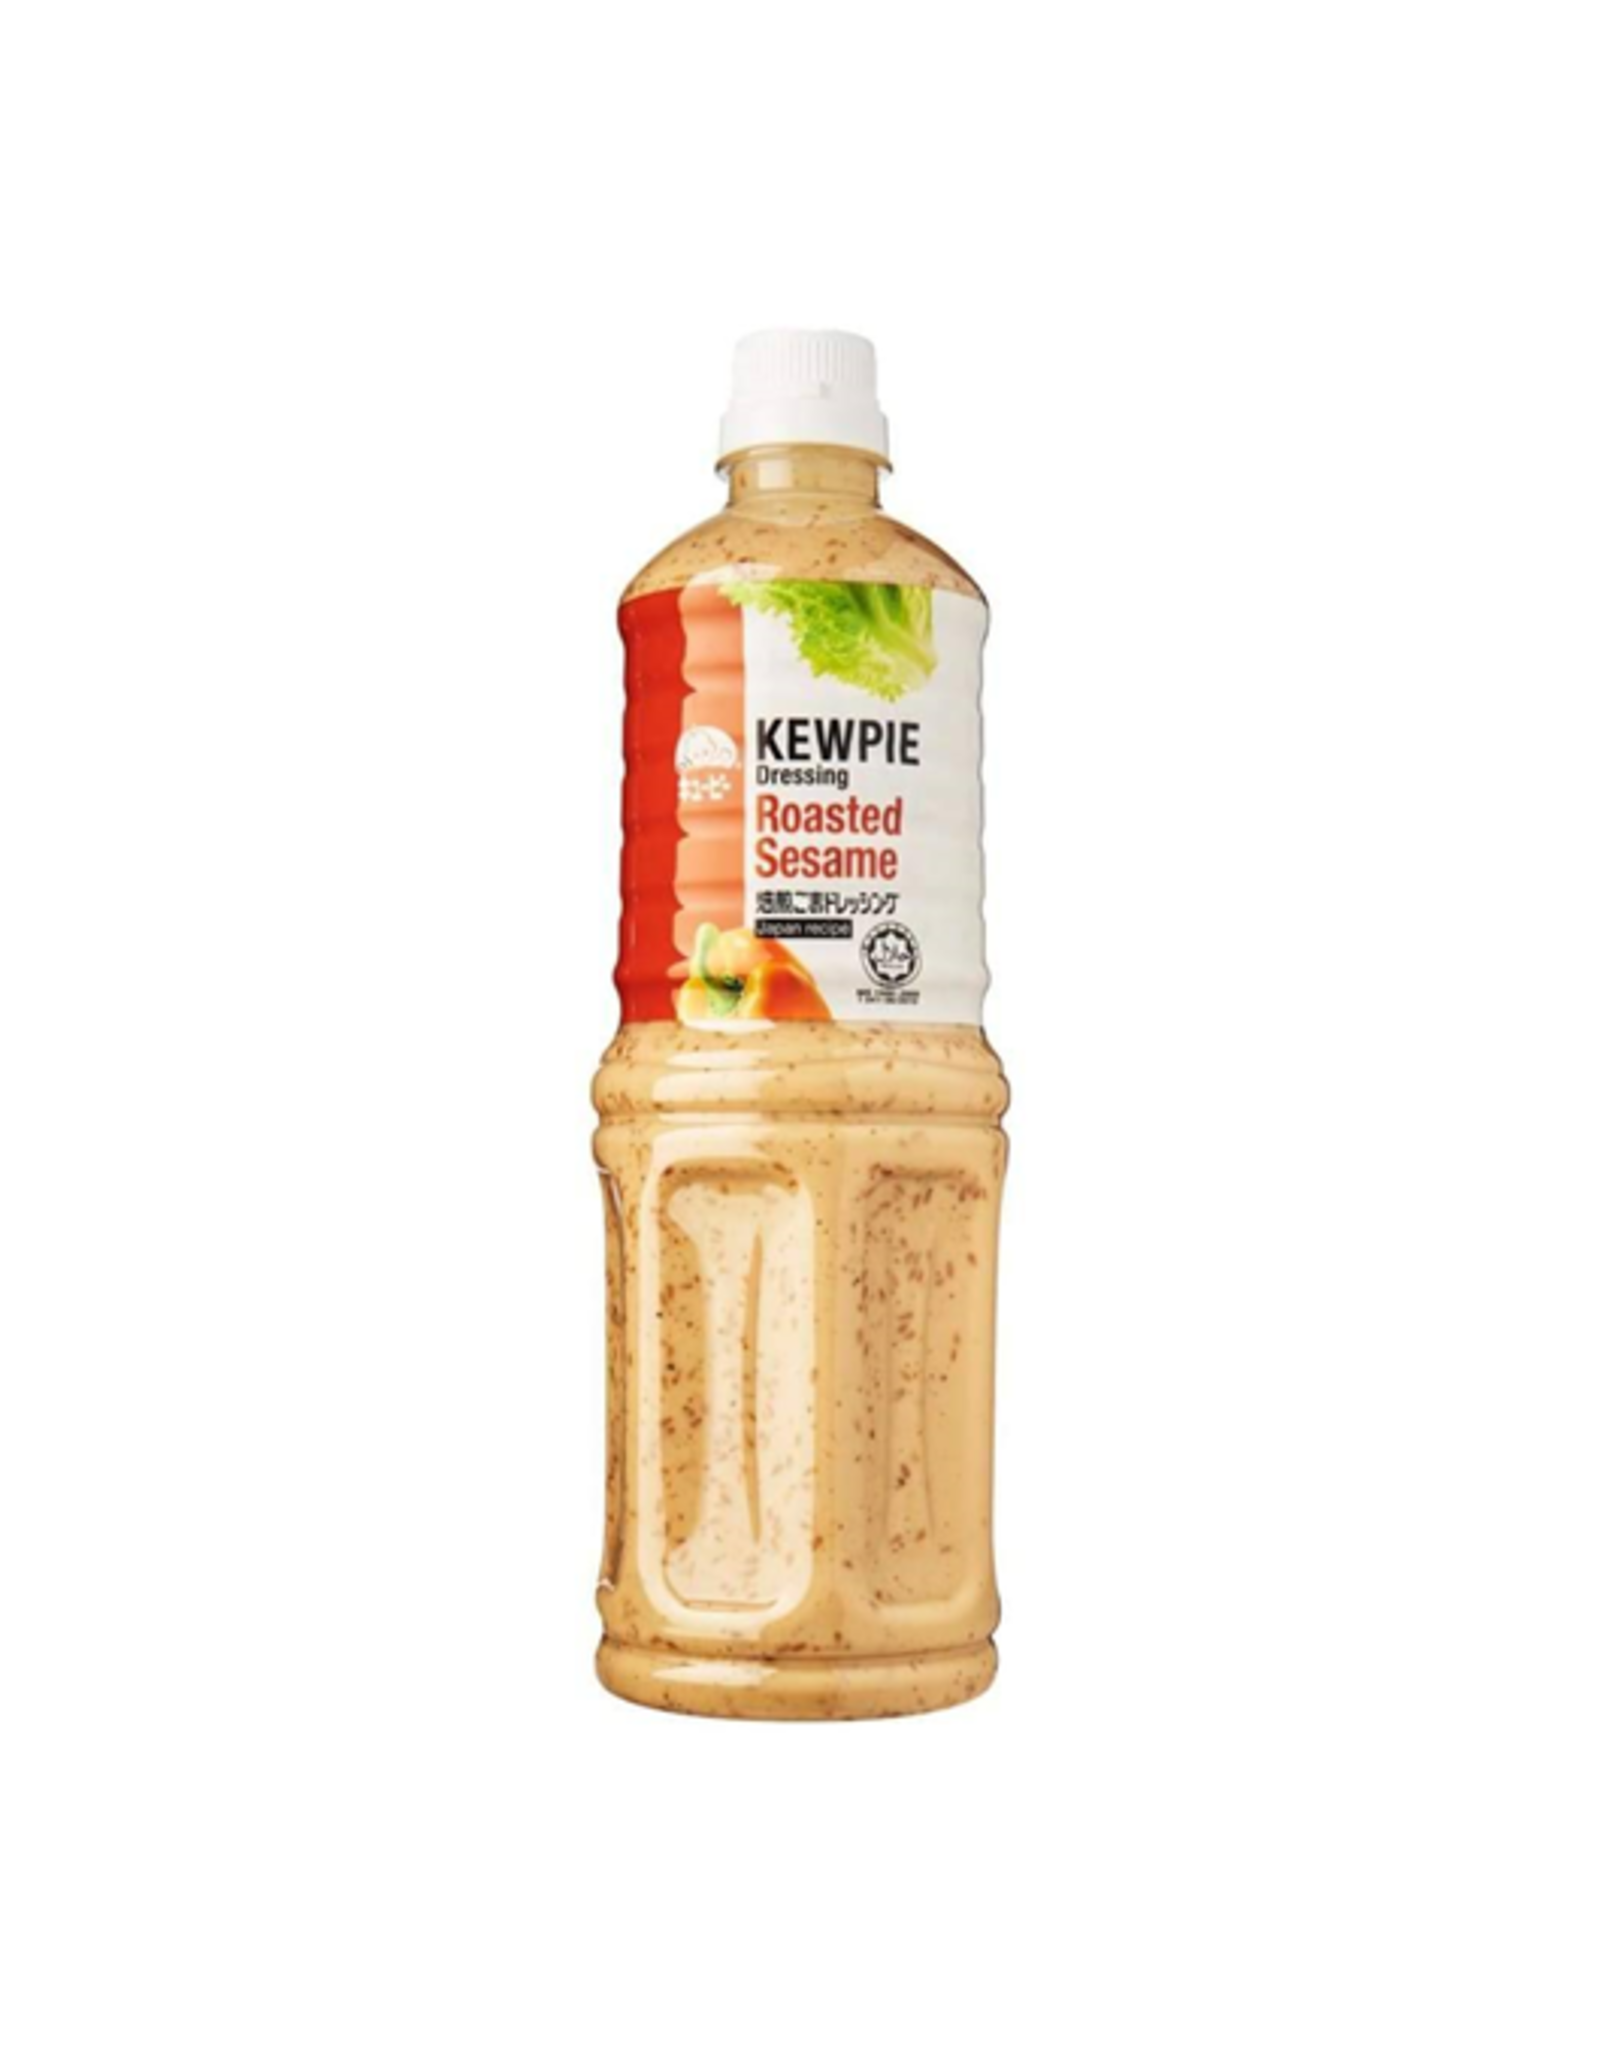 Kewpie Japanese Dressing Roasted Sesame